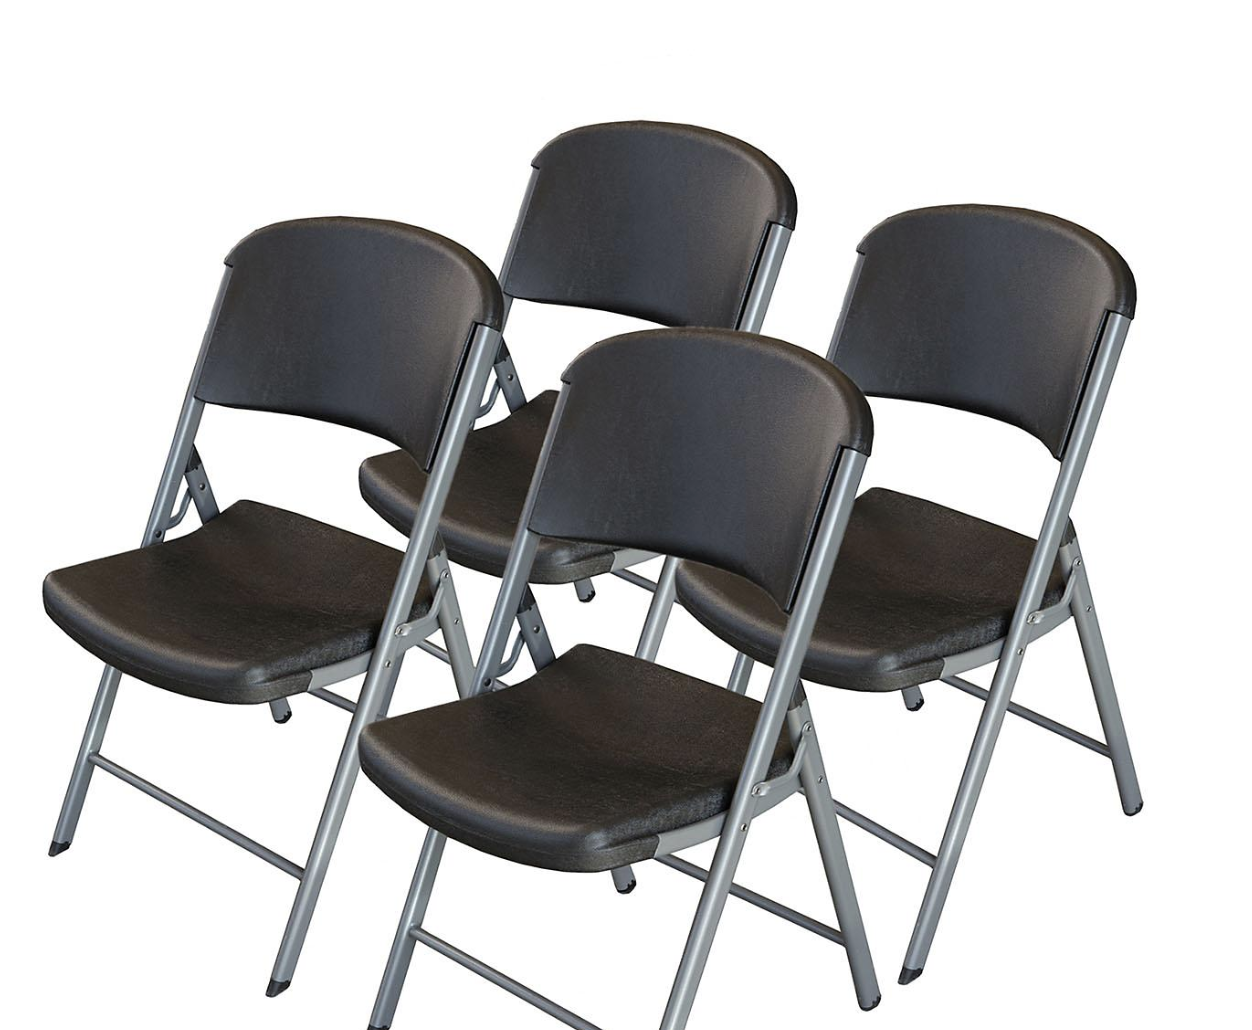 Lifetime Commercial Folding Chairs Black 4 Pk Set